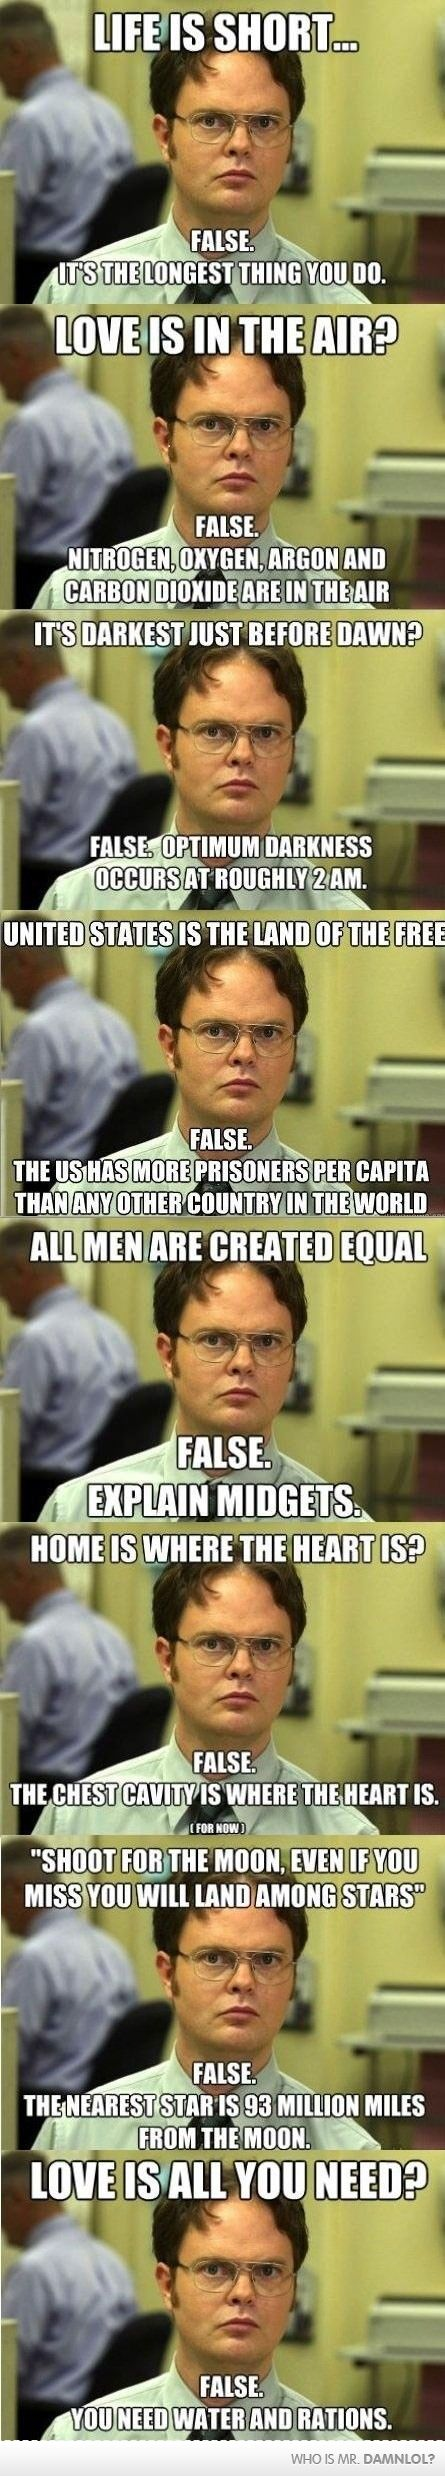 Oh, Dwight... He lights up my life.